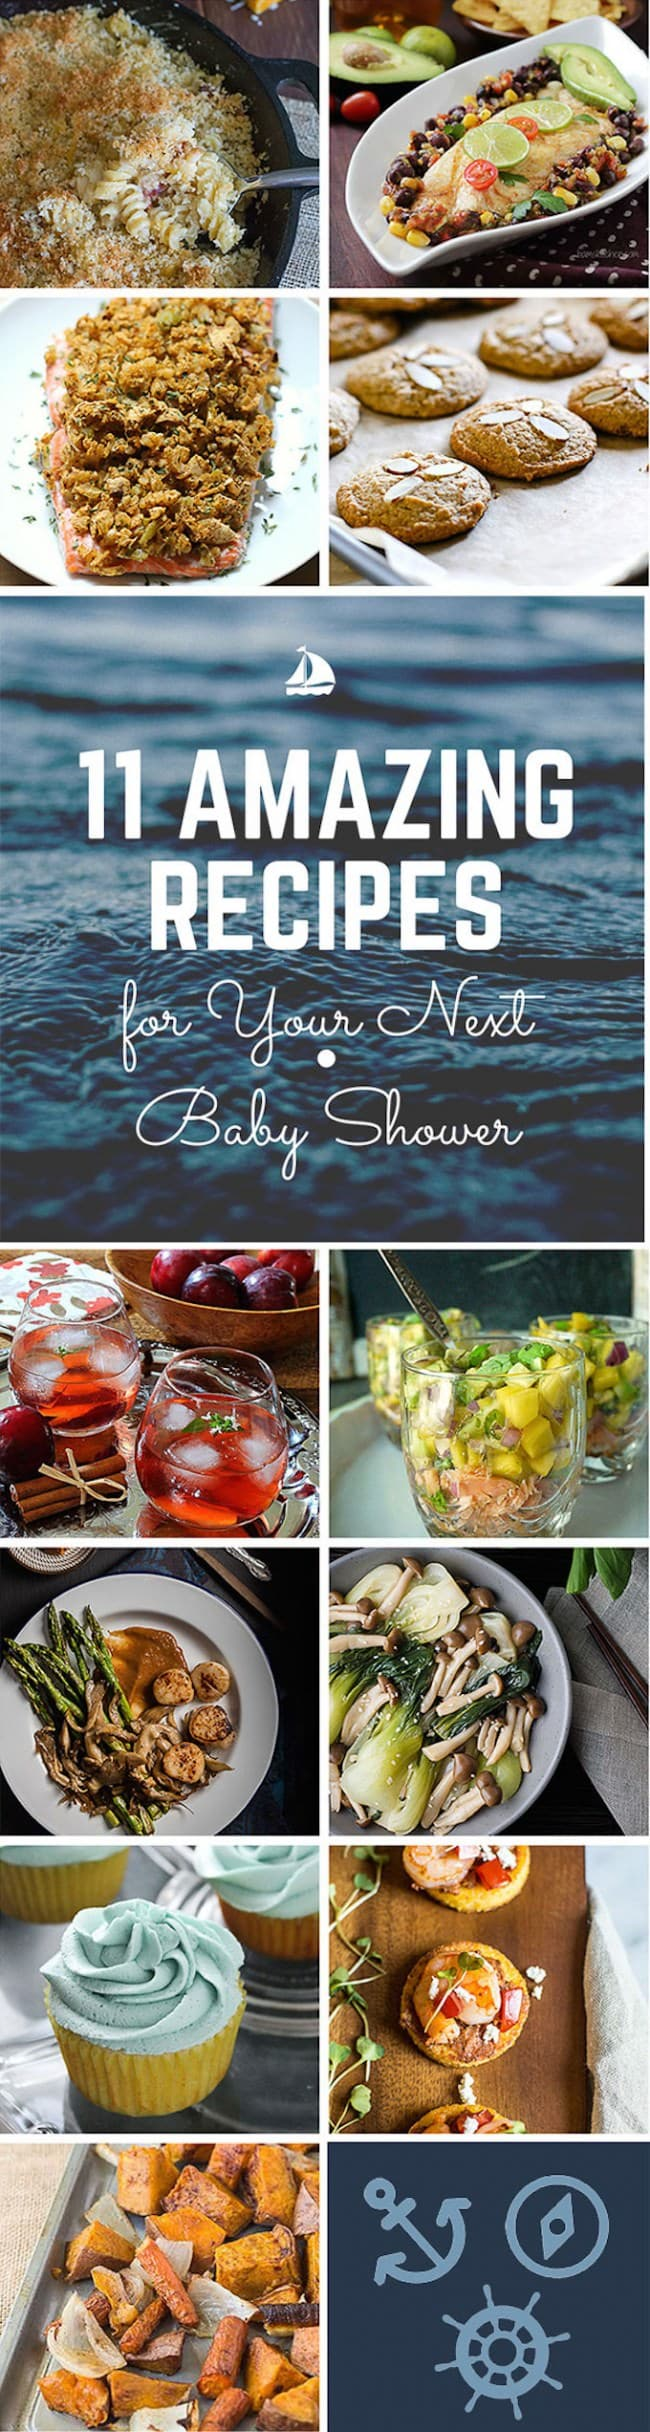 11 amazing party recipes to try for your next event, baby shower, wedding shower, or celebration! Recipes that are full of flavor, fun, simple to make, and mouth watering delicious! #party #recipes #DIY